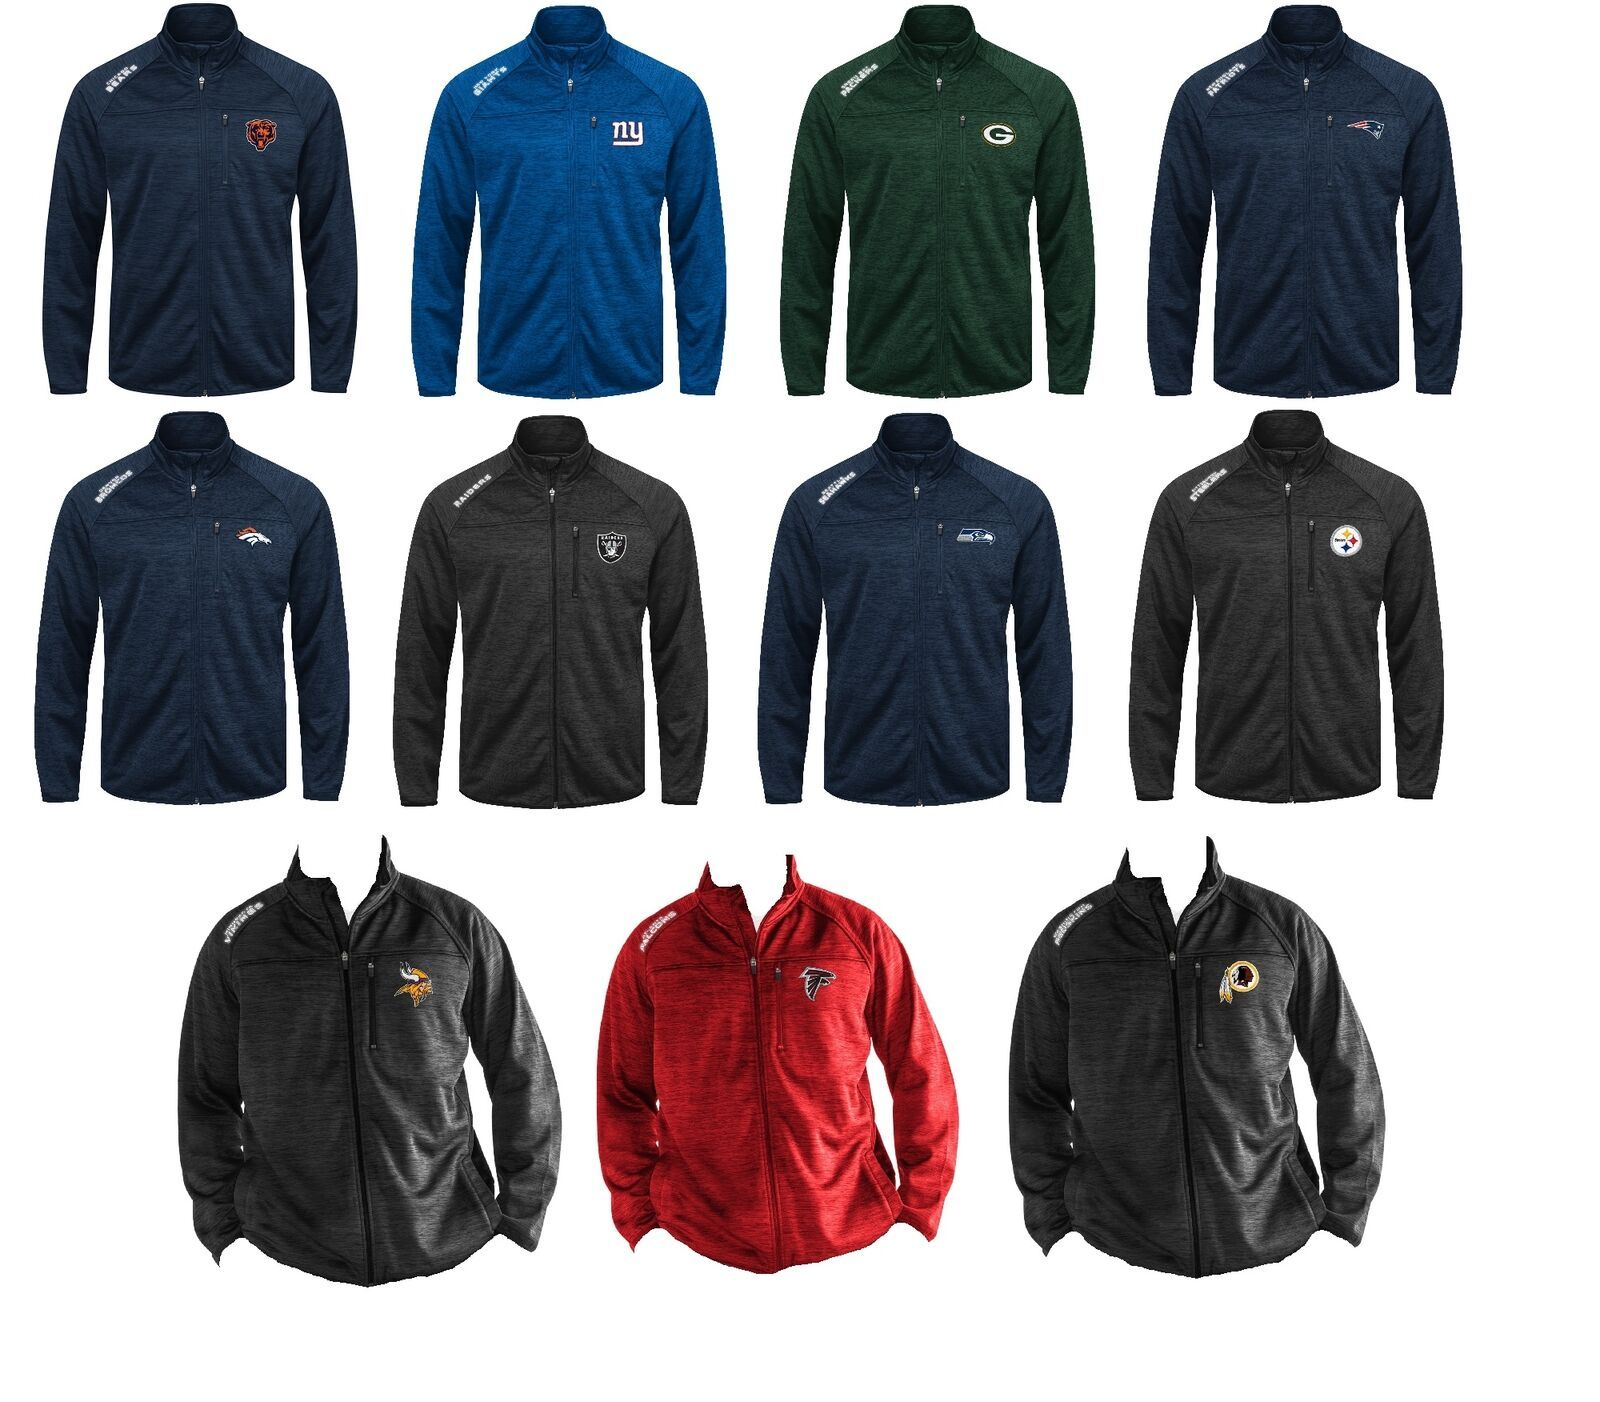 NFL Men's Jacket Mindset Transitional Mid-Weight Full Zip Authentic Licensed NEW